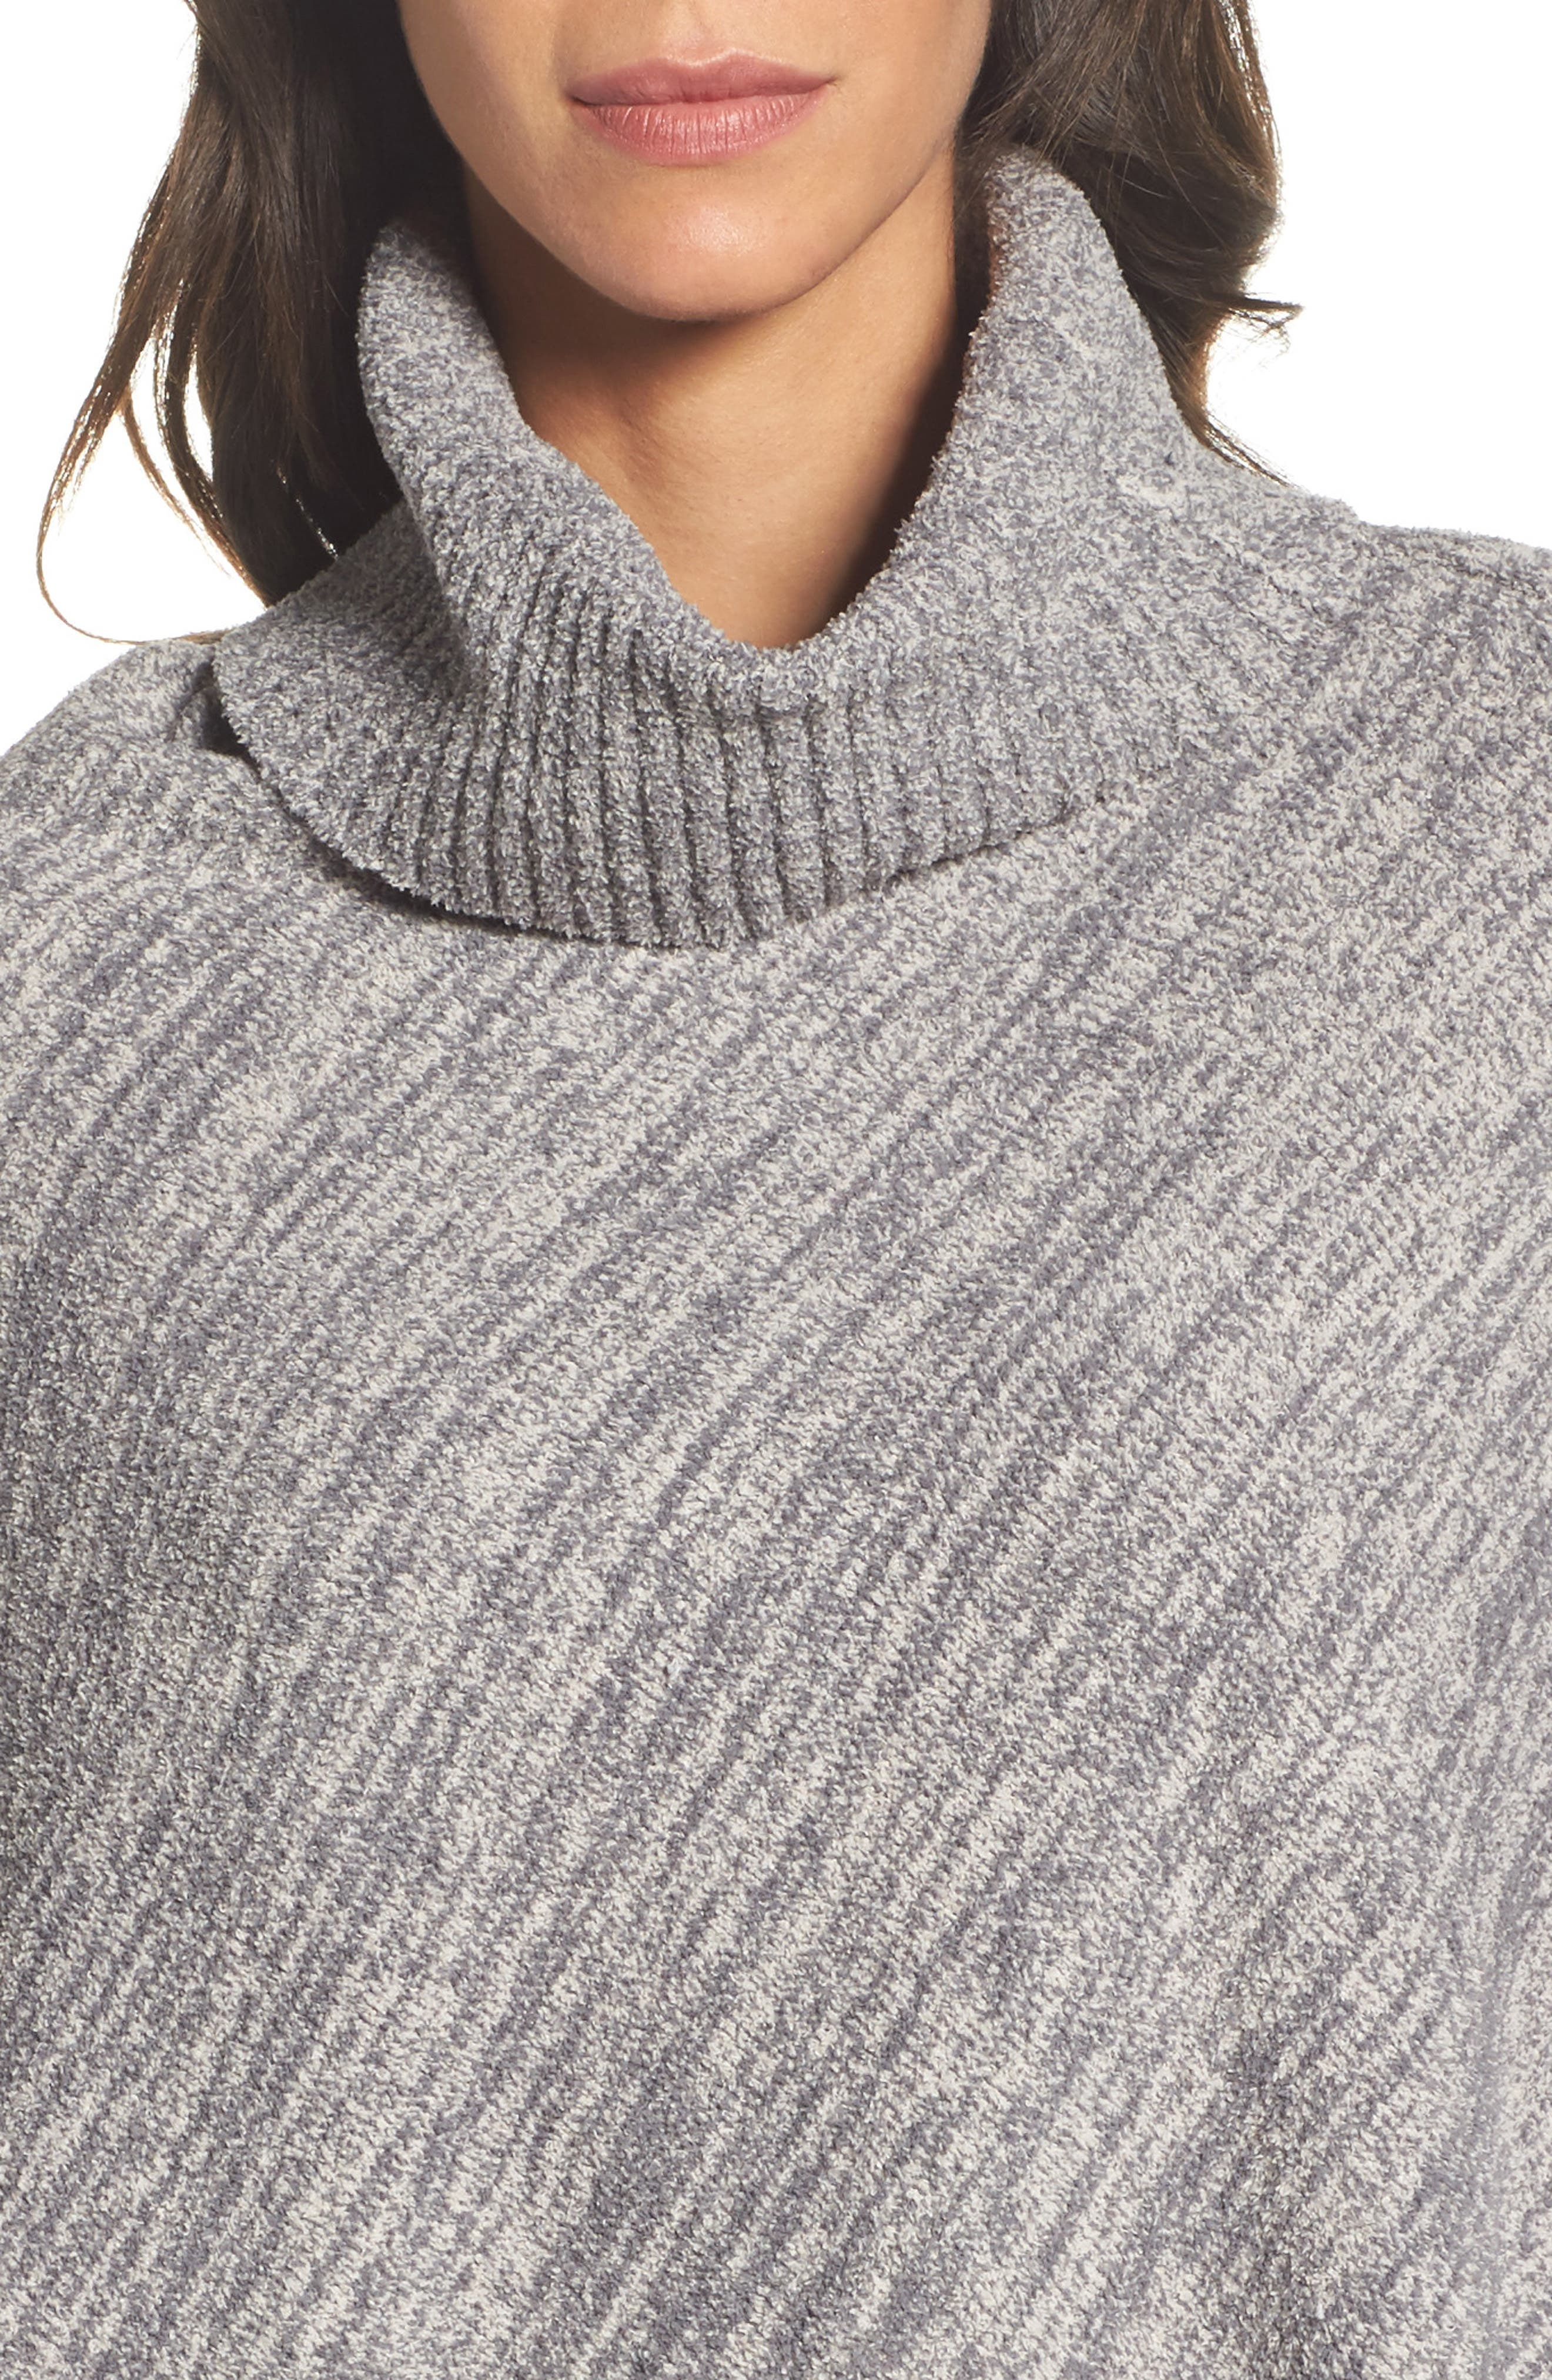 Cozychic<sup>®</sup> Point Dume Poncho,                             Alternate thumbnail 4, color,                             GRAPHITE/ STONE HEATHERED